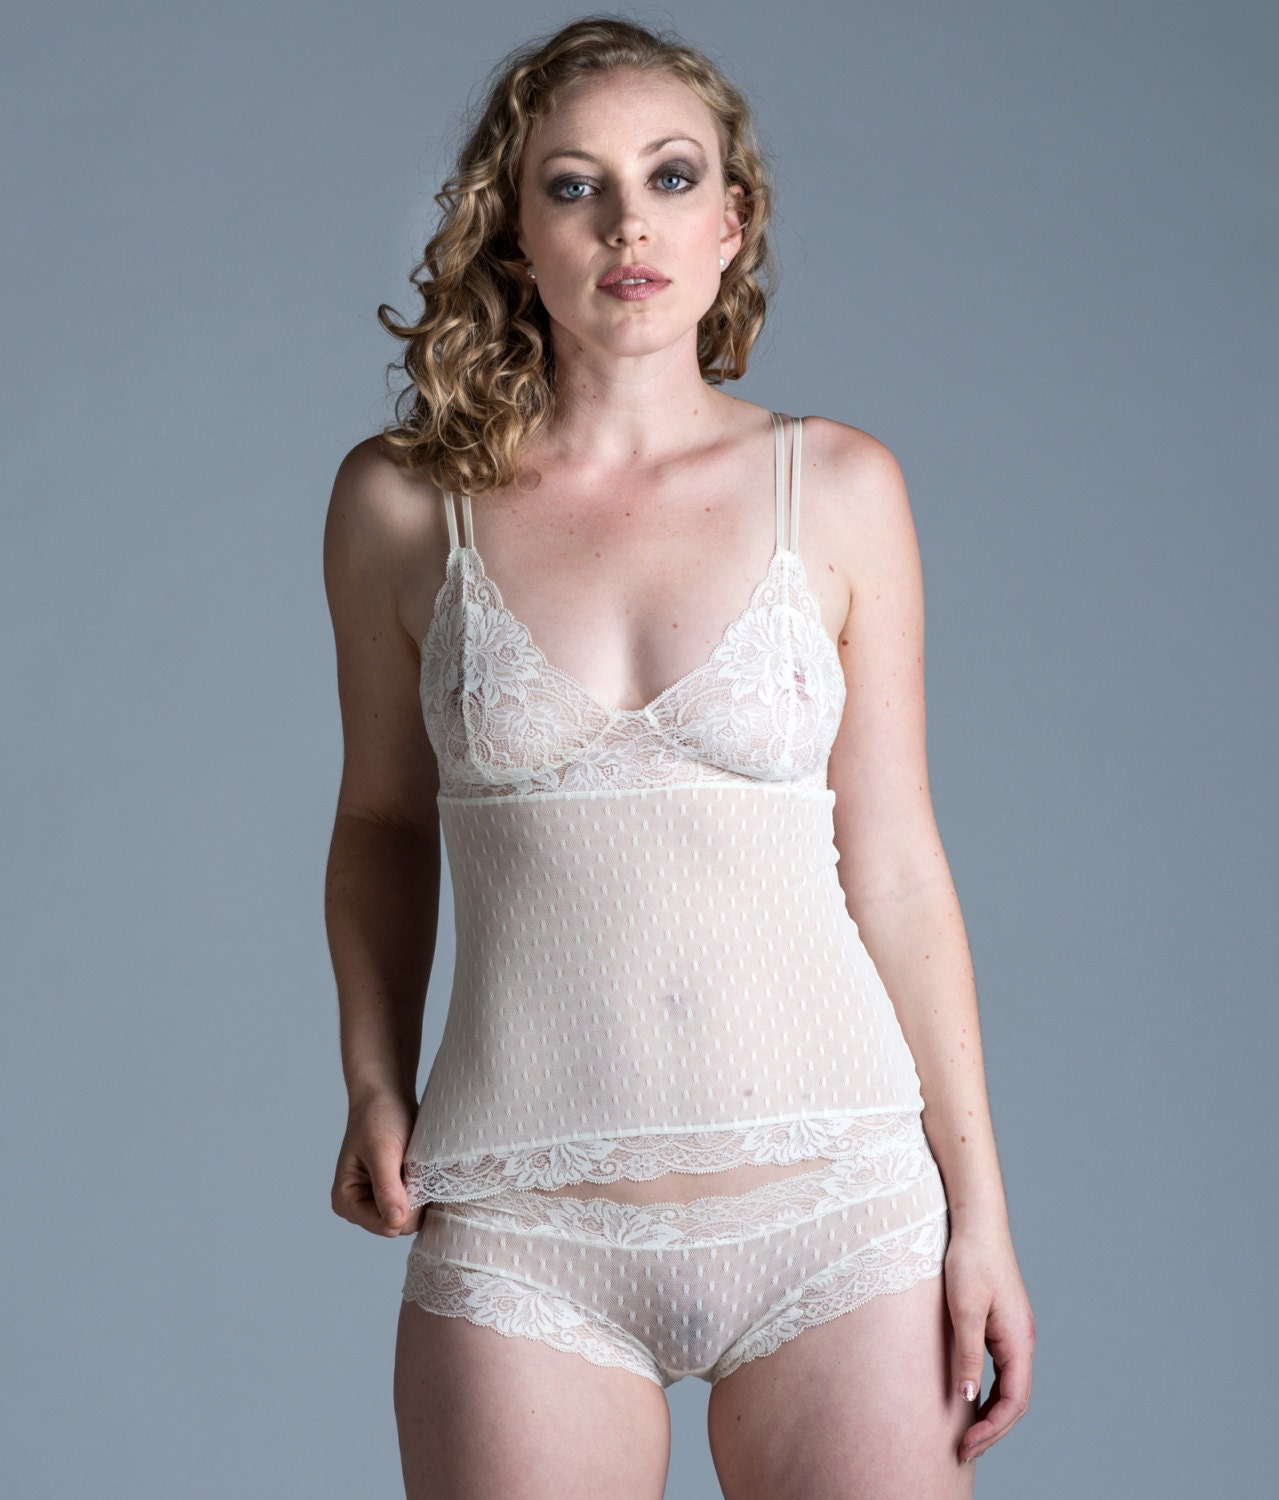 See Through Ivory Camisole Sheer Wedding Lingerie